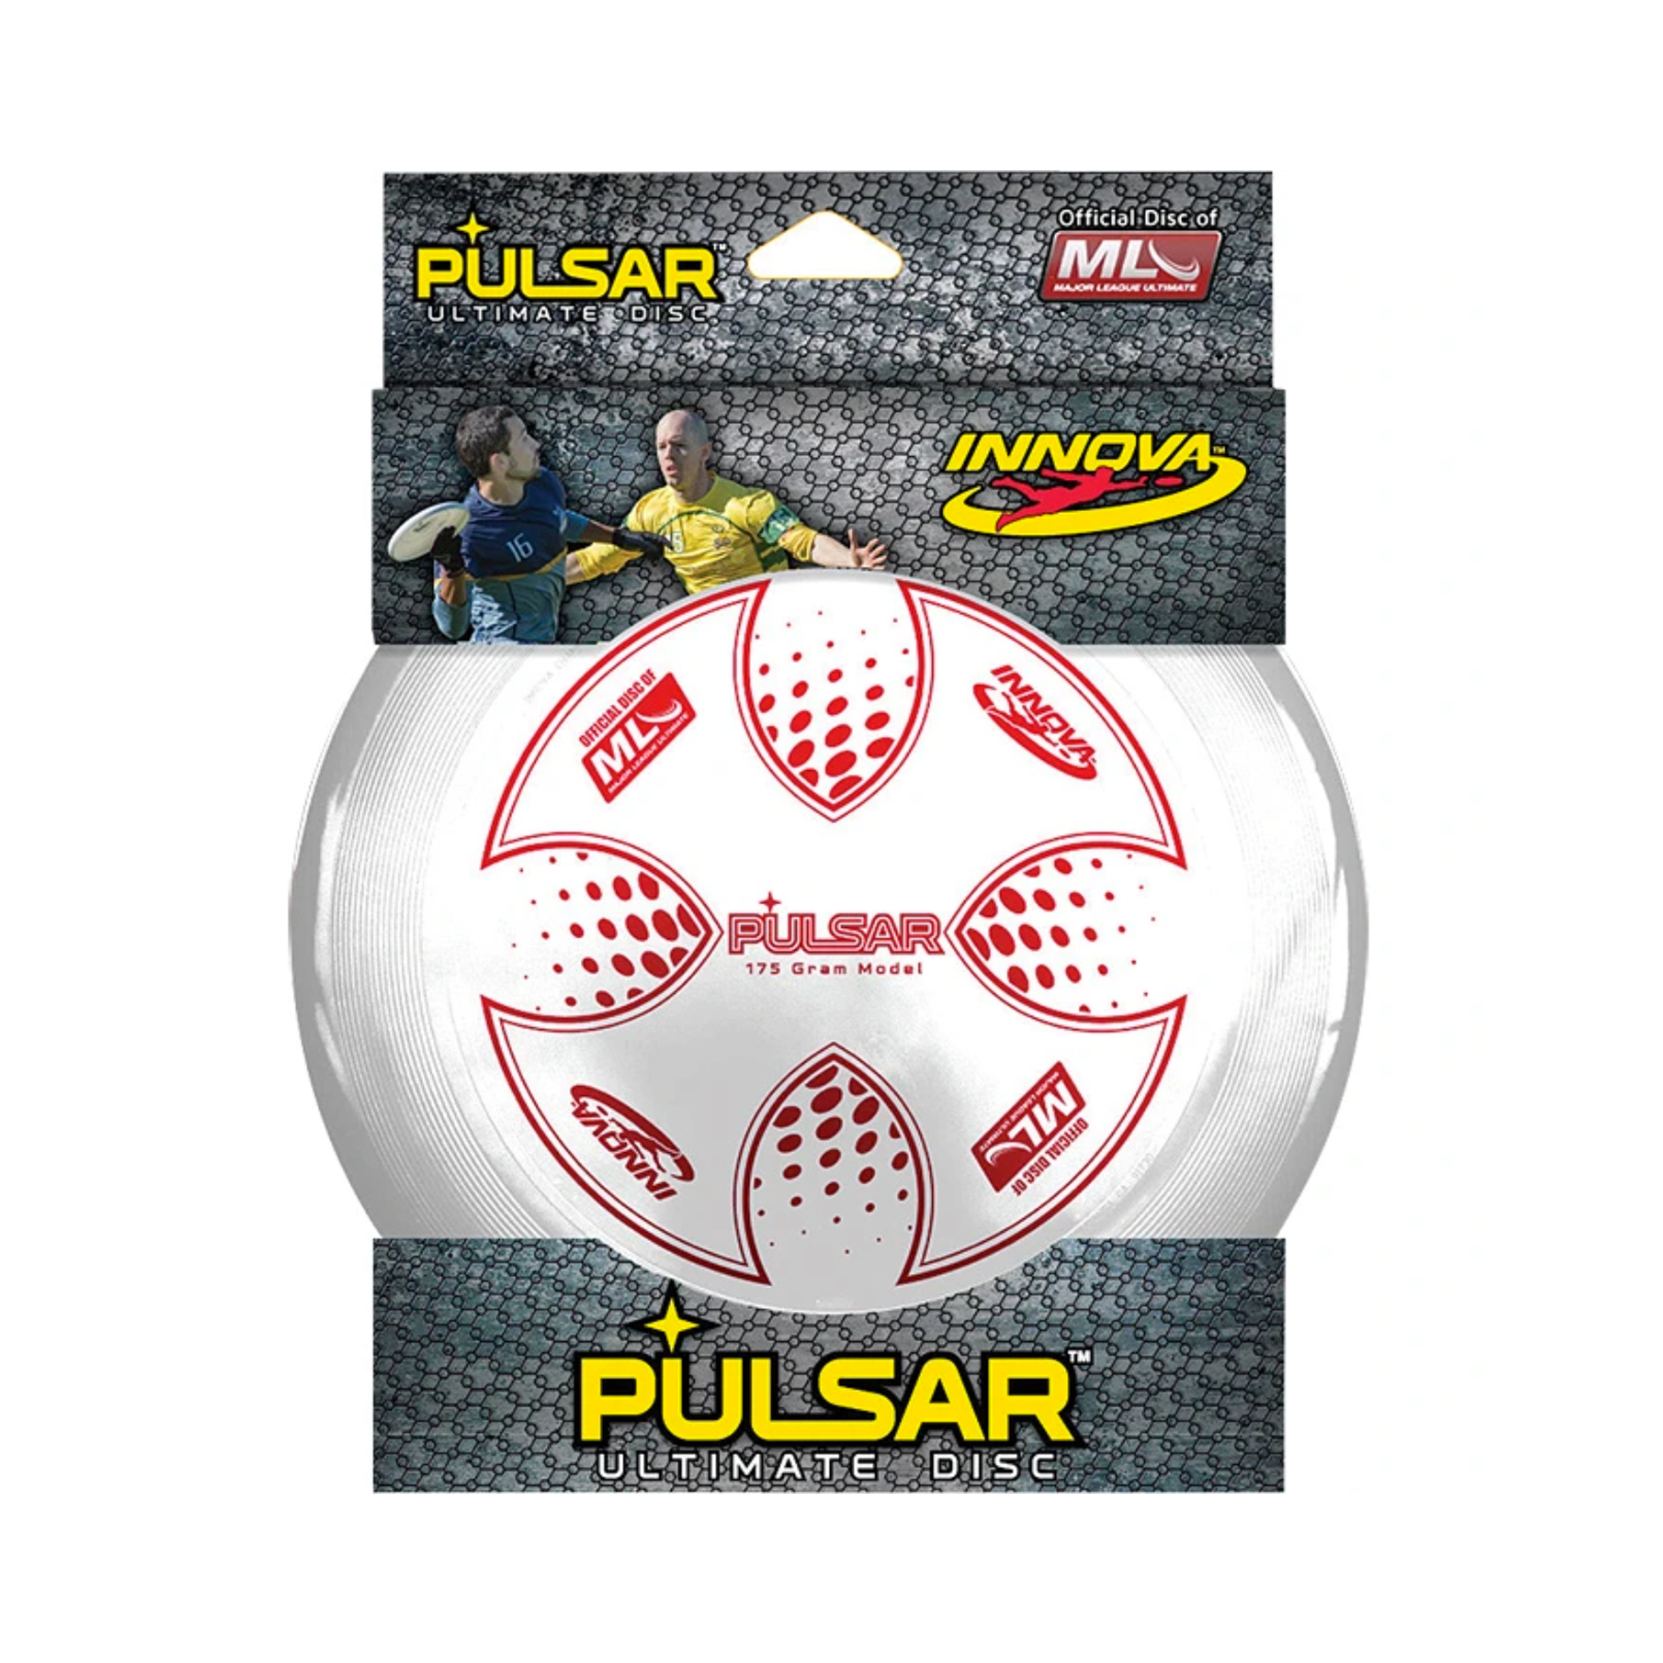 Pulsar Ultimate Disc, Assorted Colors-1